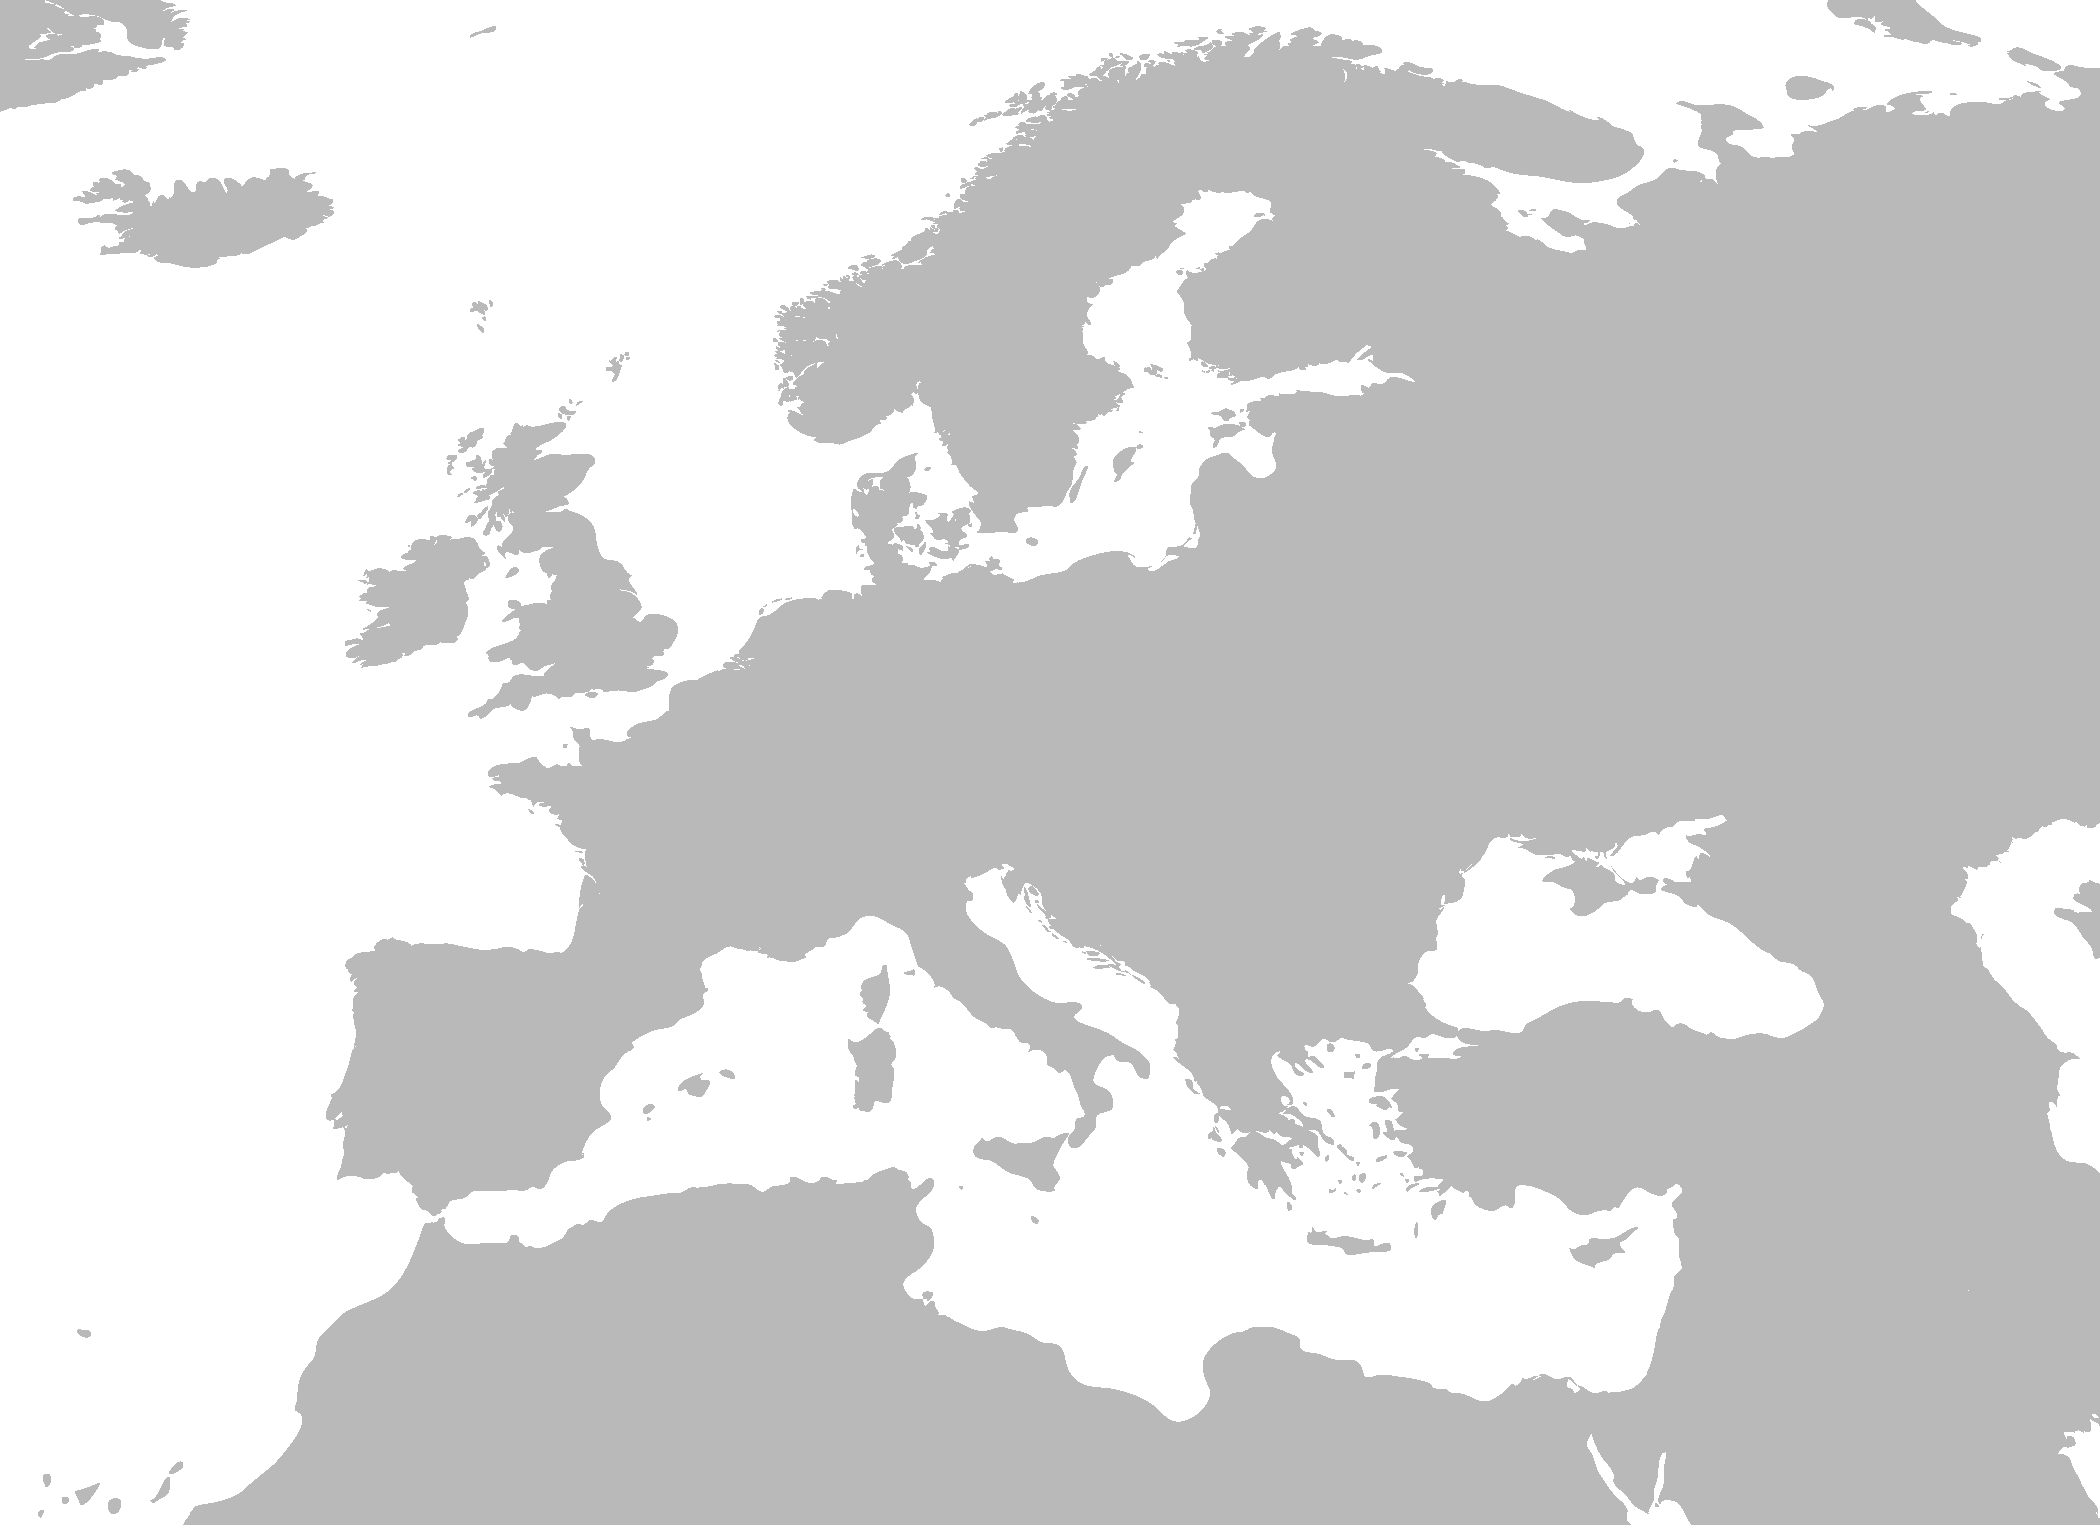 File:BlankMap Europe V3.png